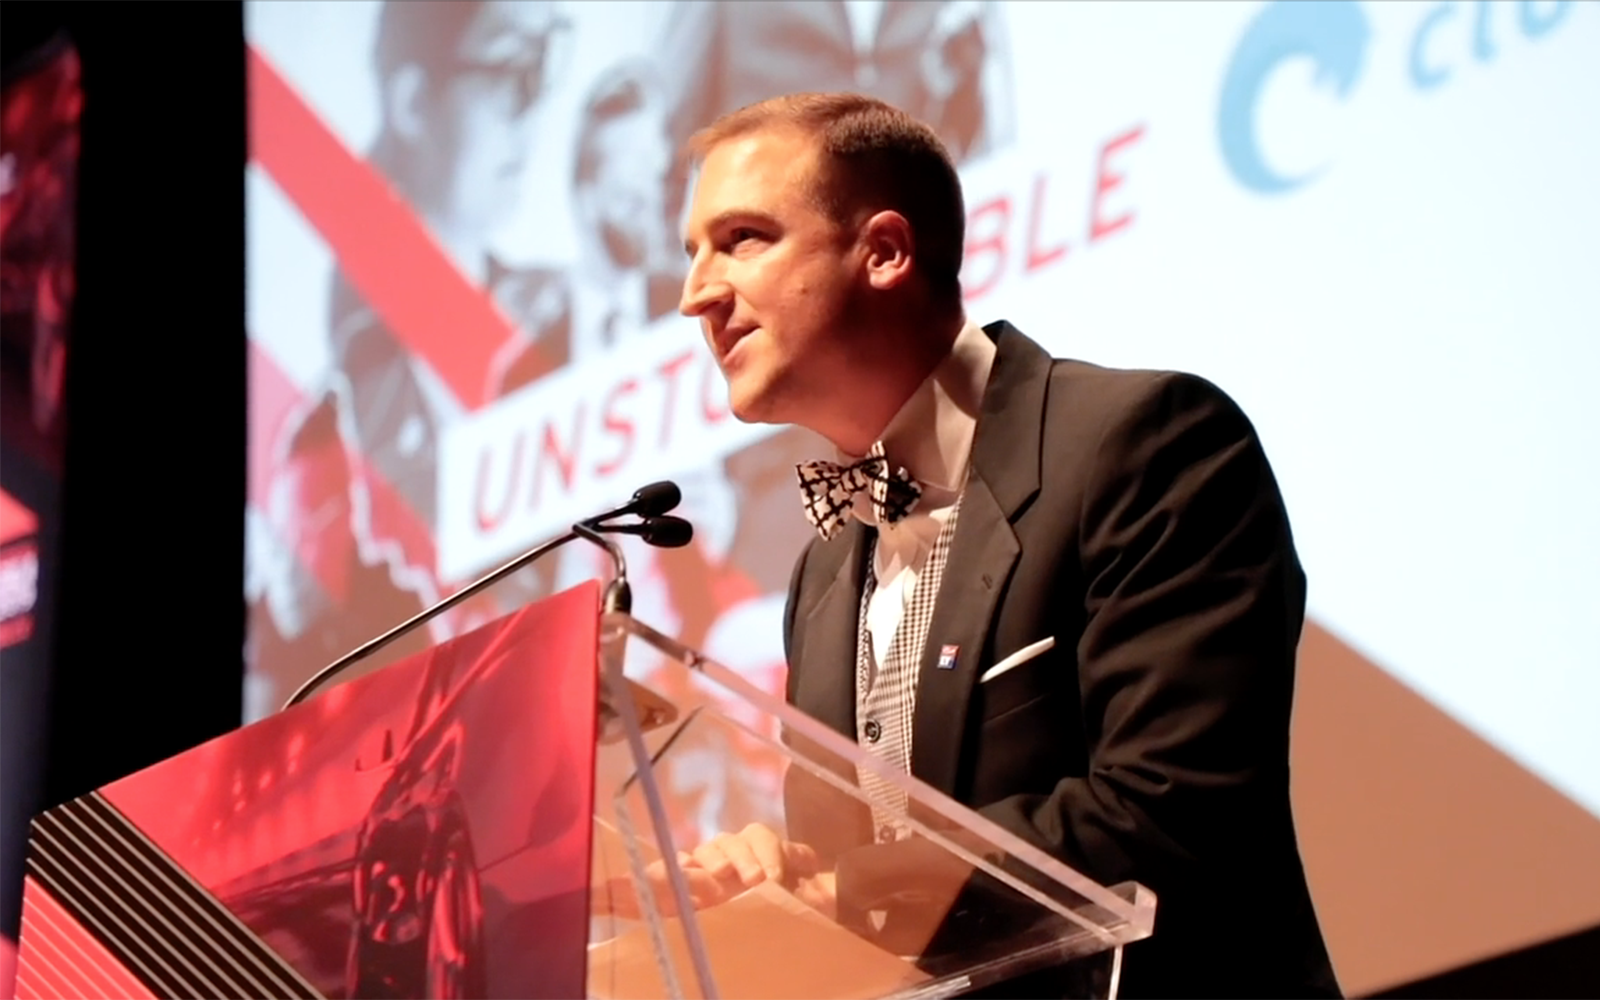 Photo of a person speaking from a podium at a CGLCC event.